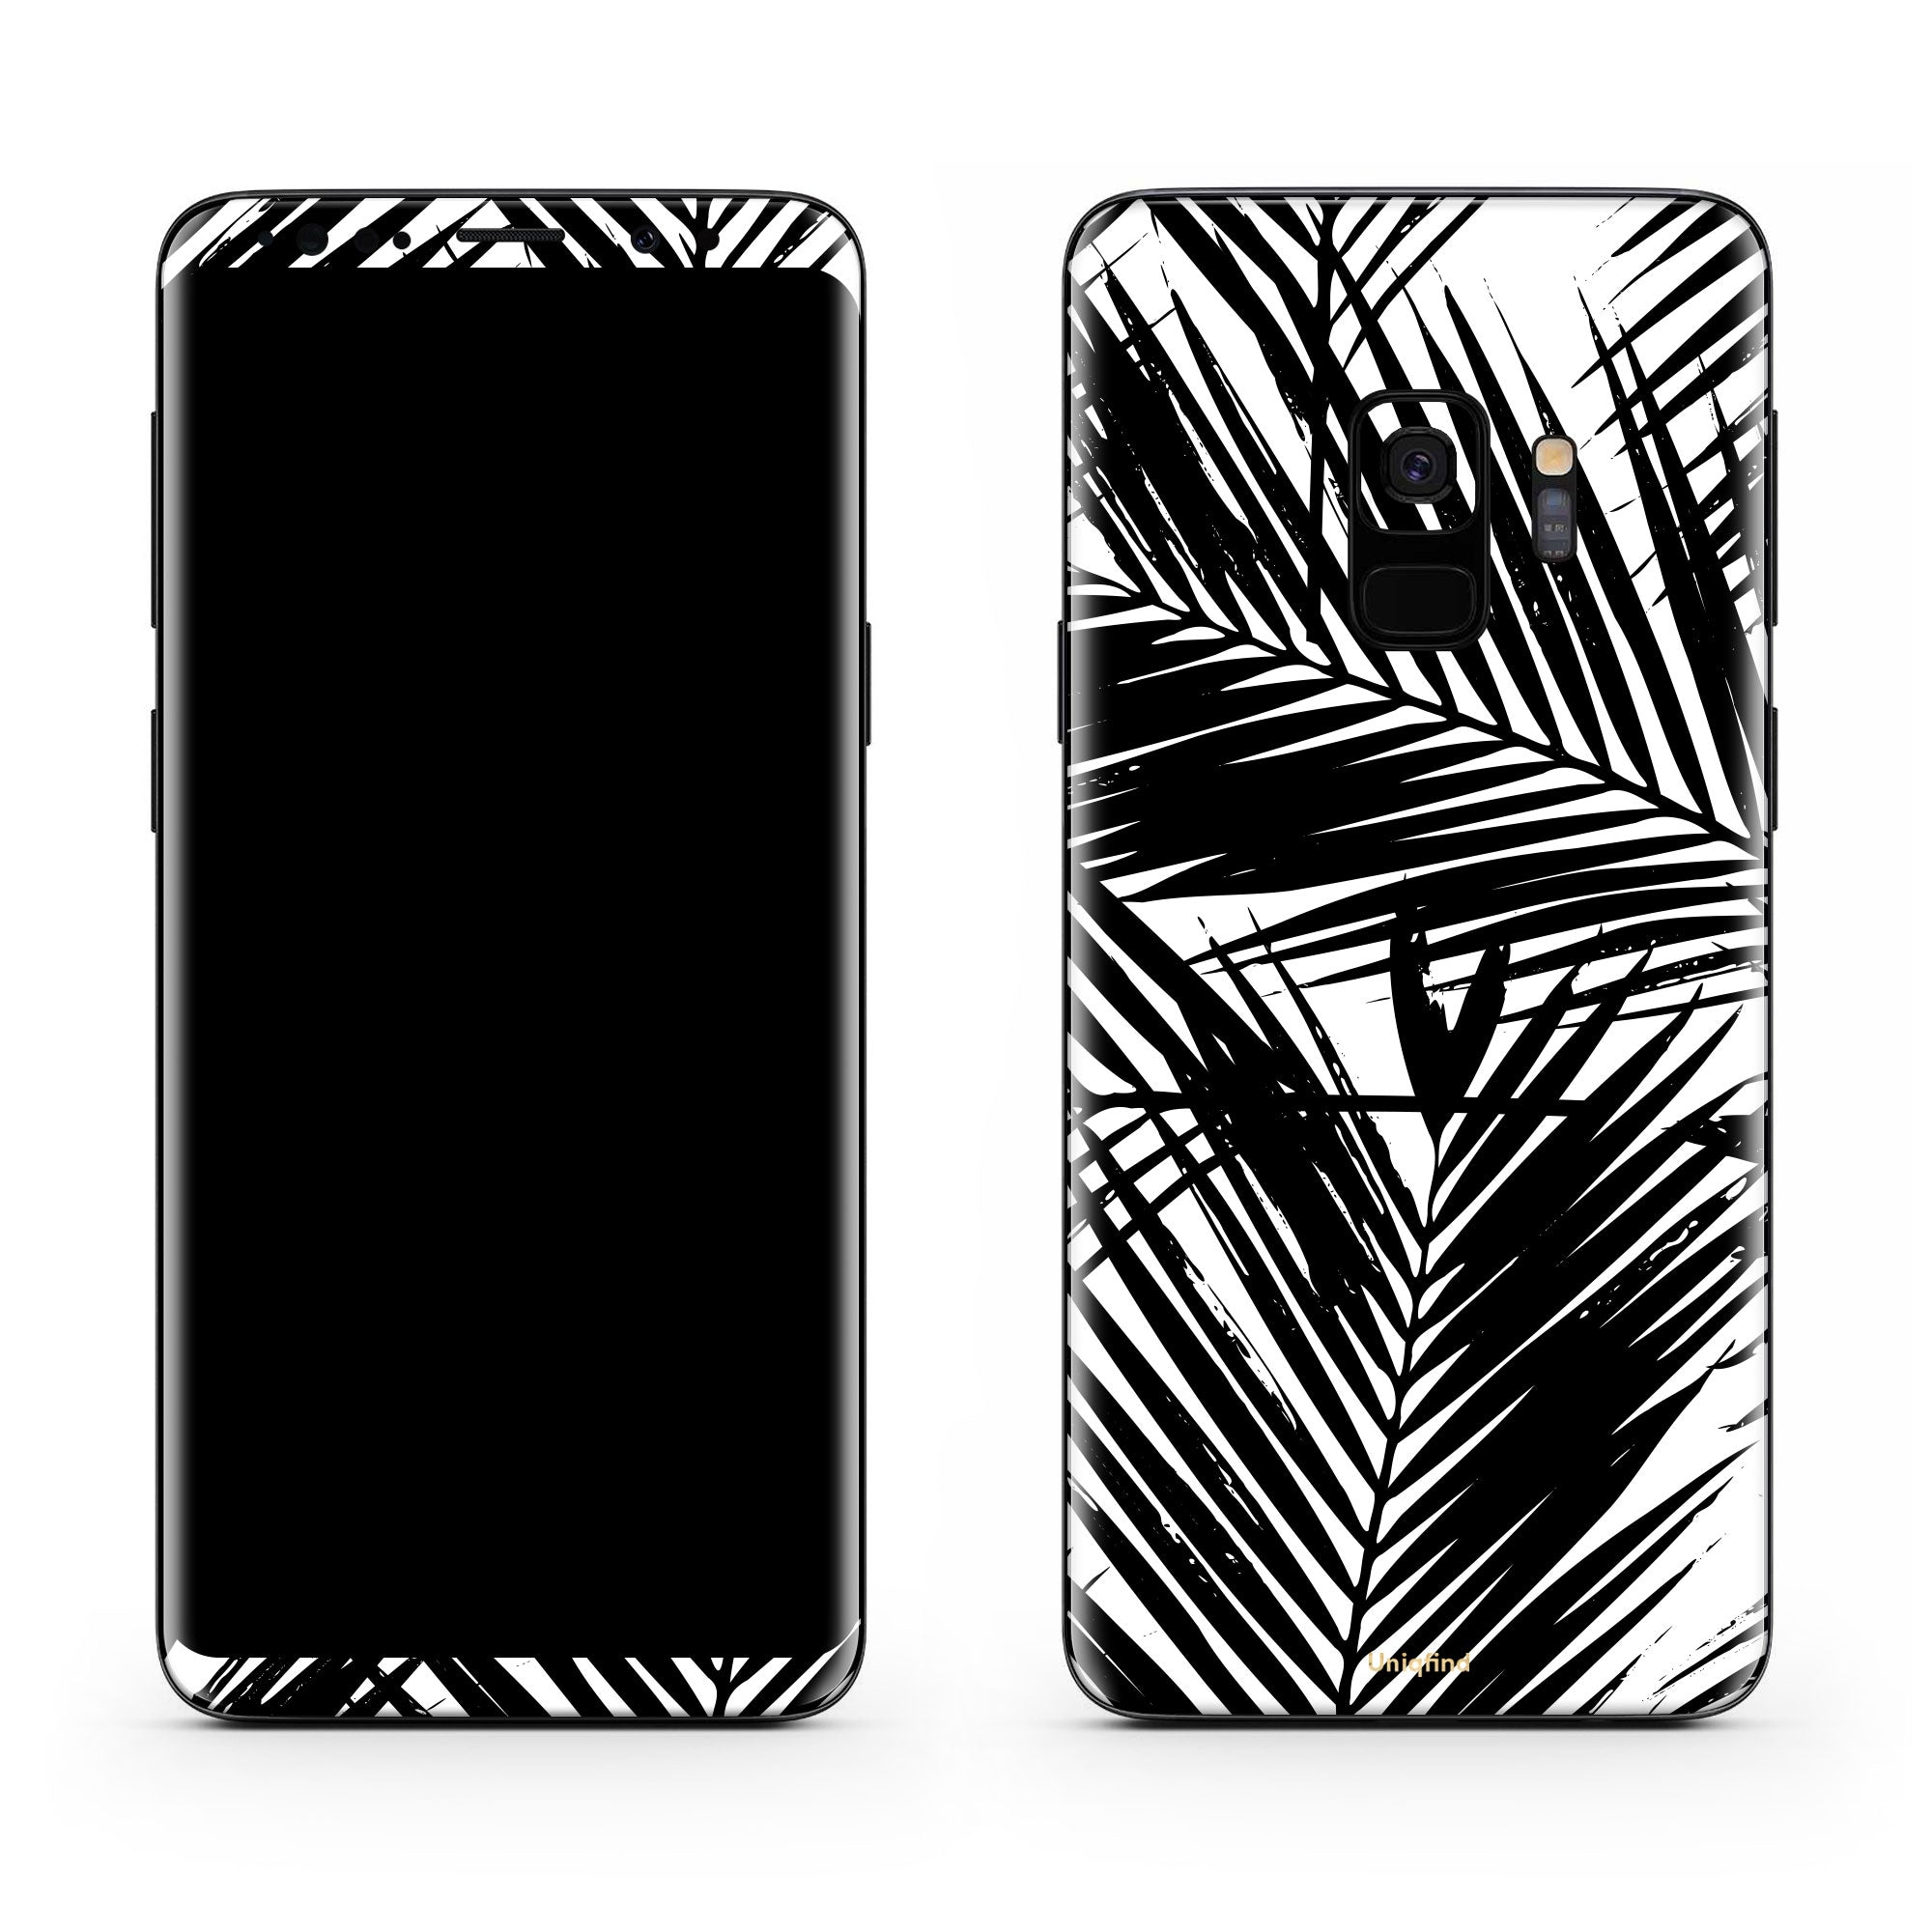 Palm Skin Galaxy S9 Plus